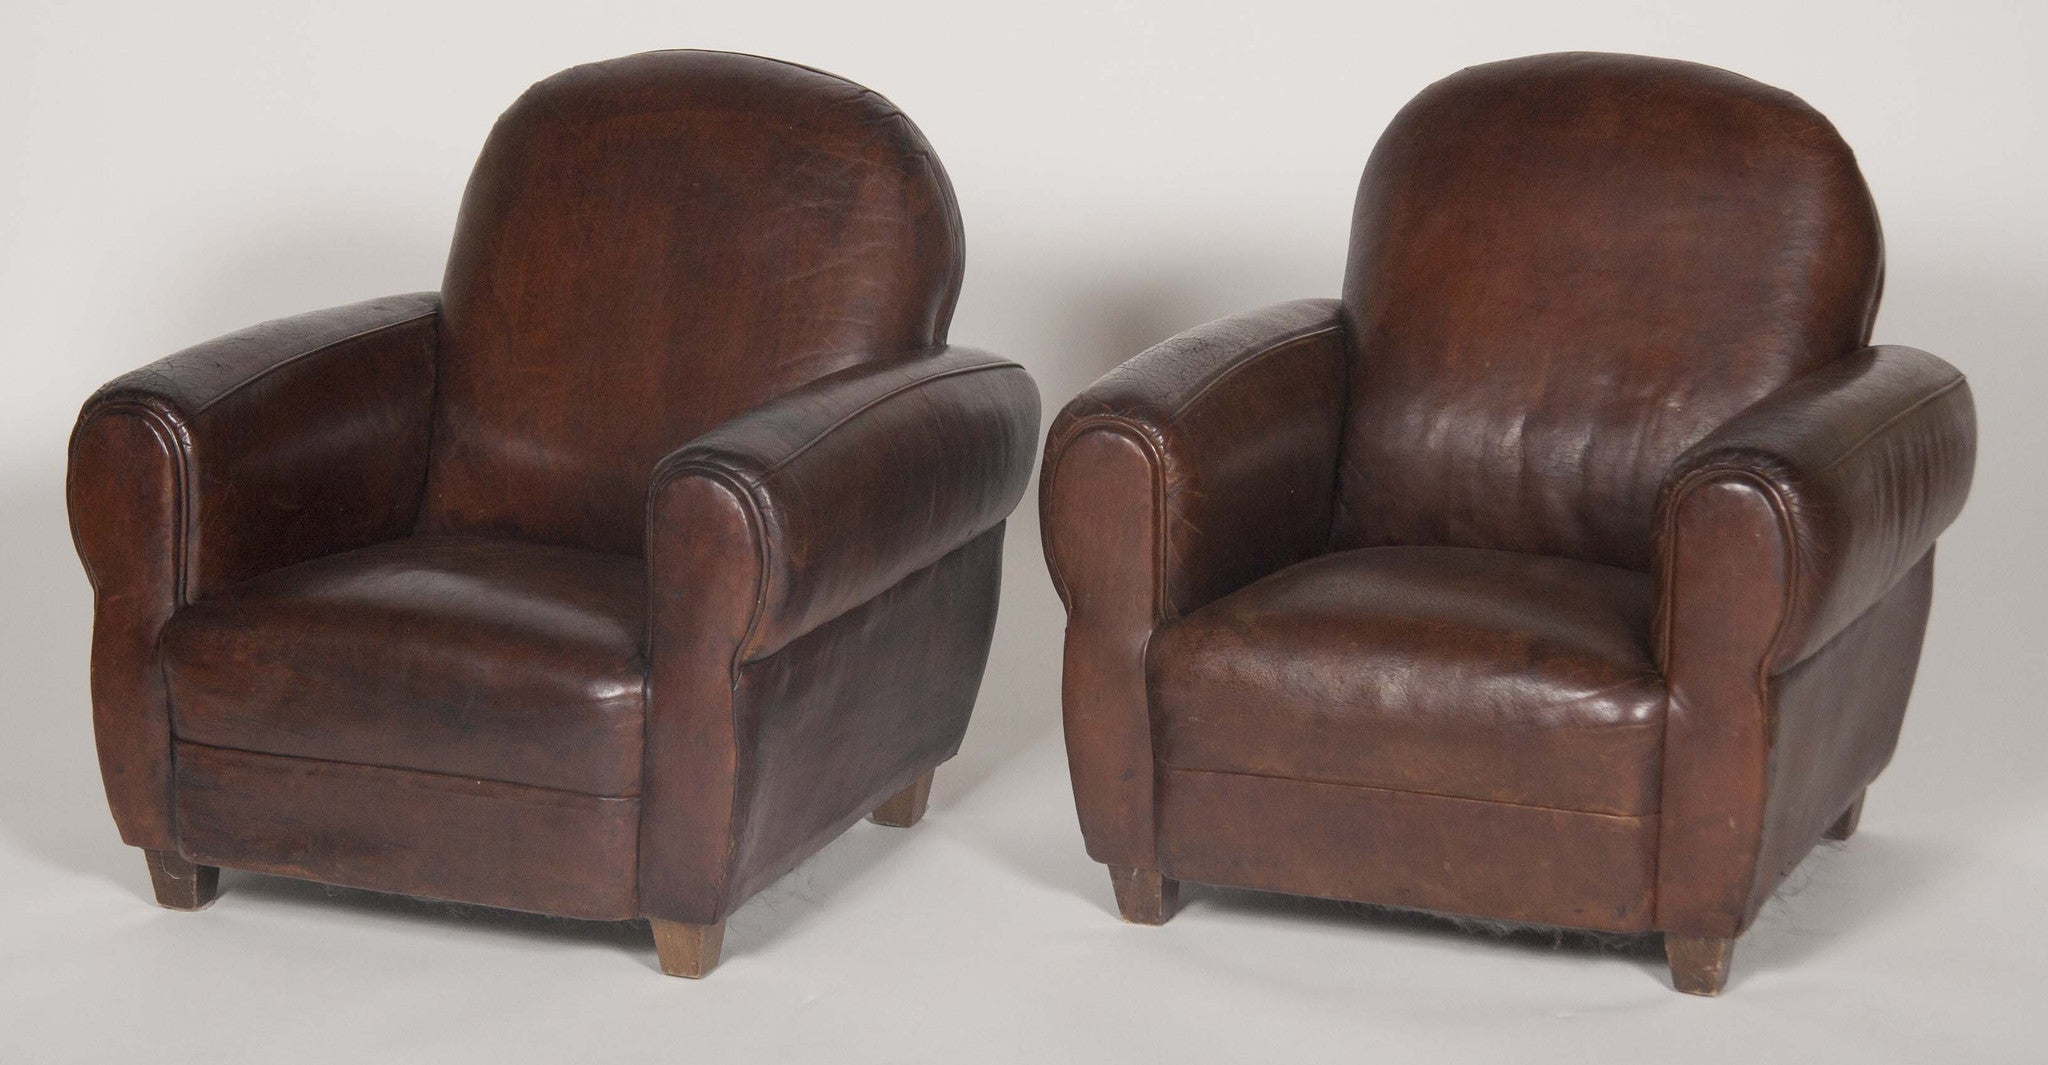 Rare Pair of Vintage Deco Leather Child's Chairs